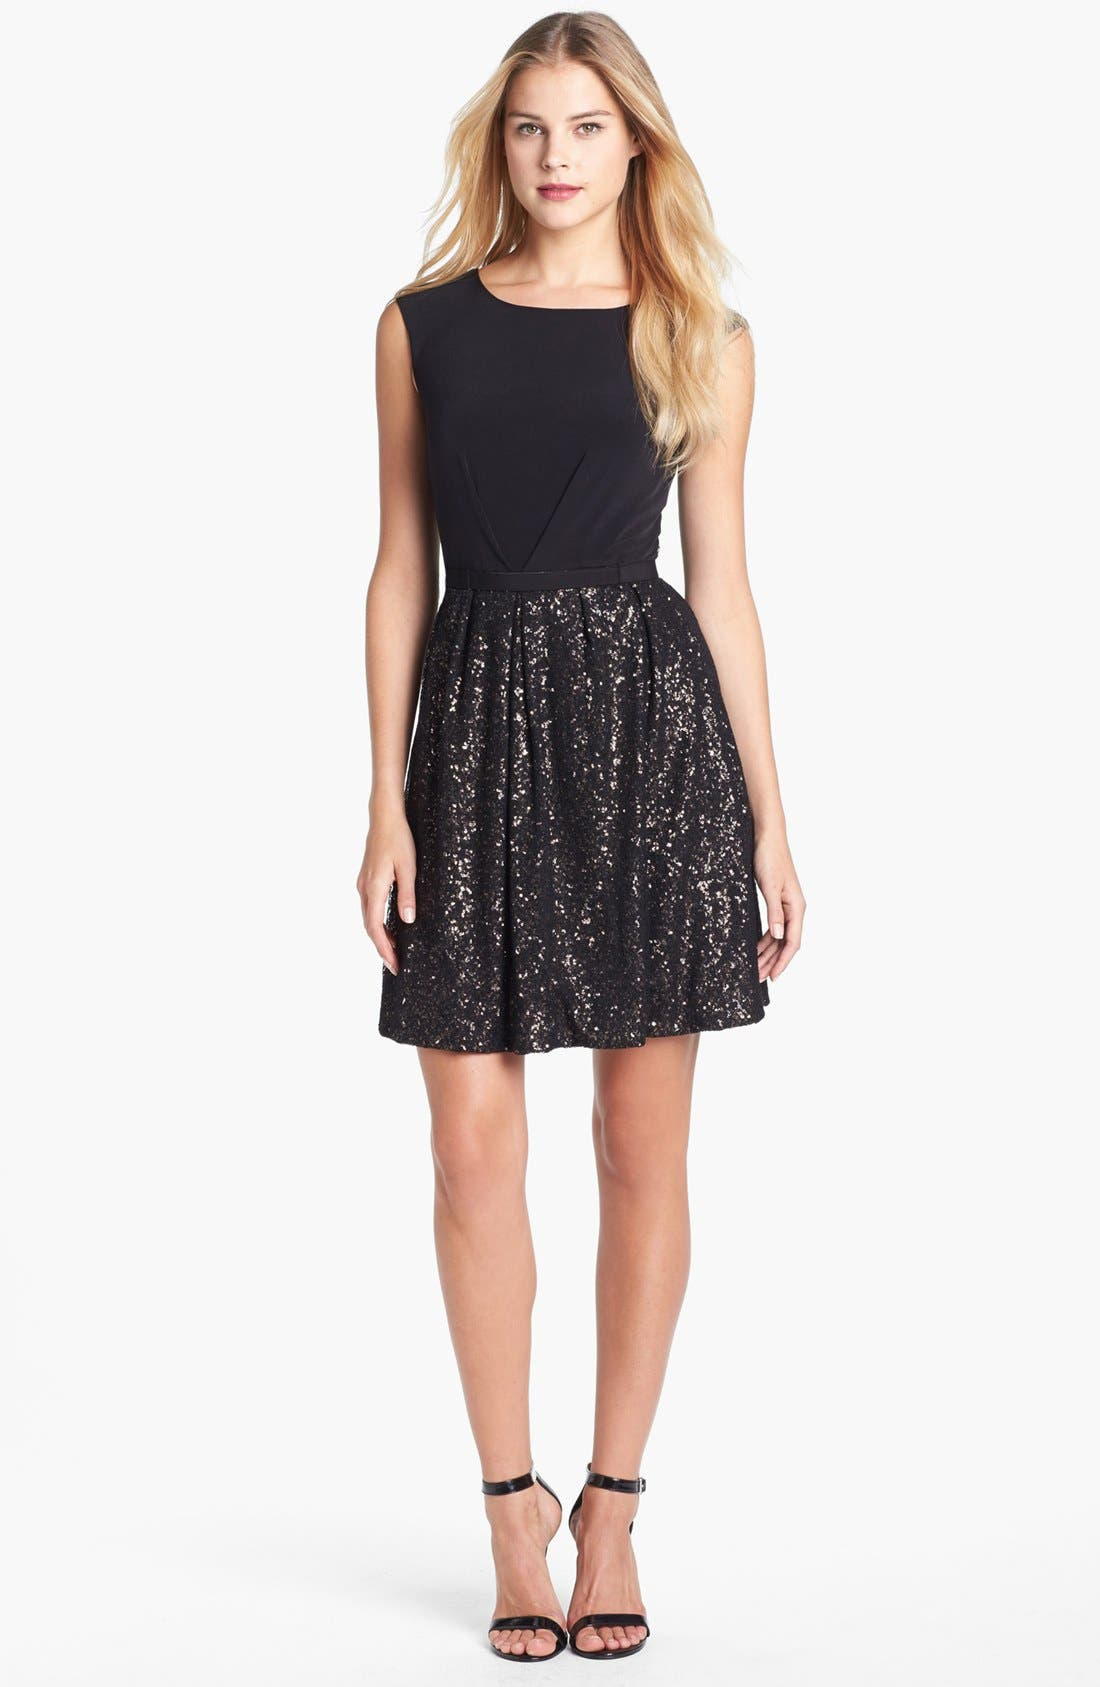 Alternate Image 1 Selected - Laundry by Shelli Segal Embellished Jersey Fit & Flare Dress